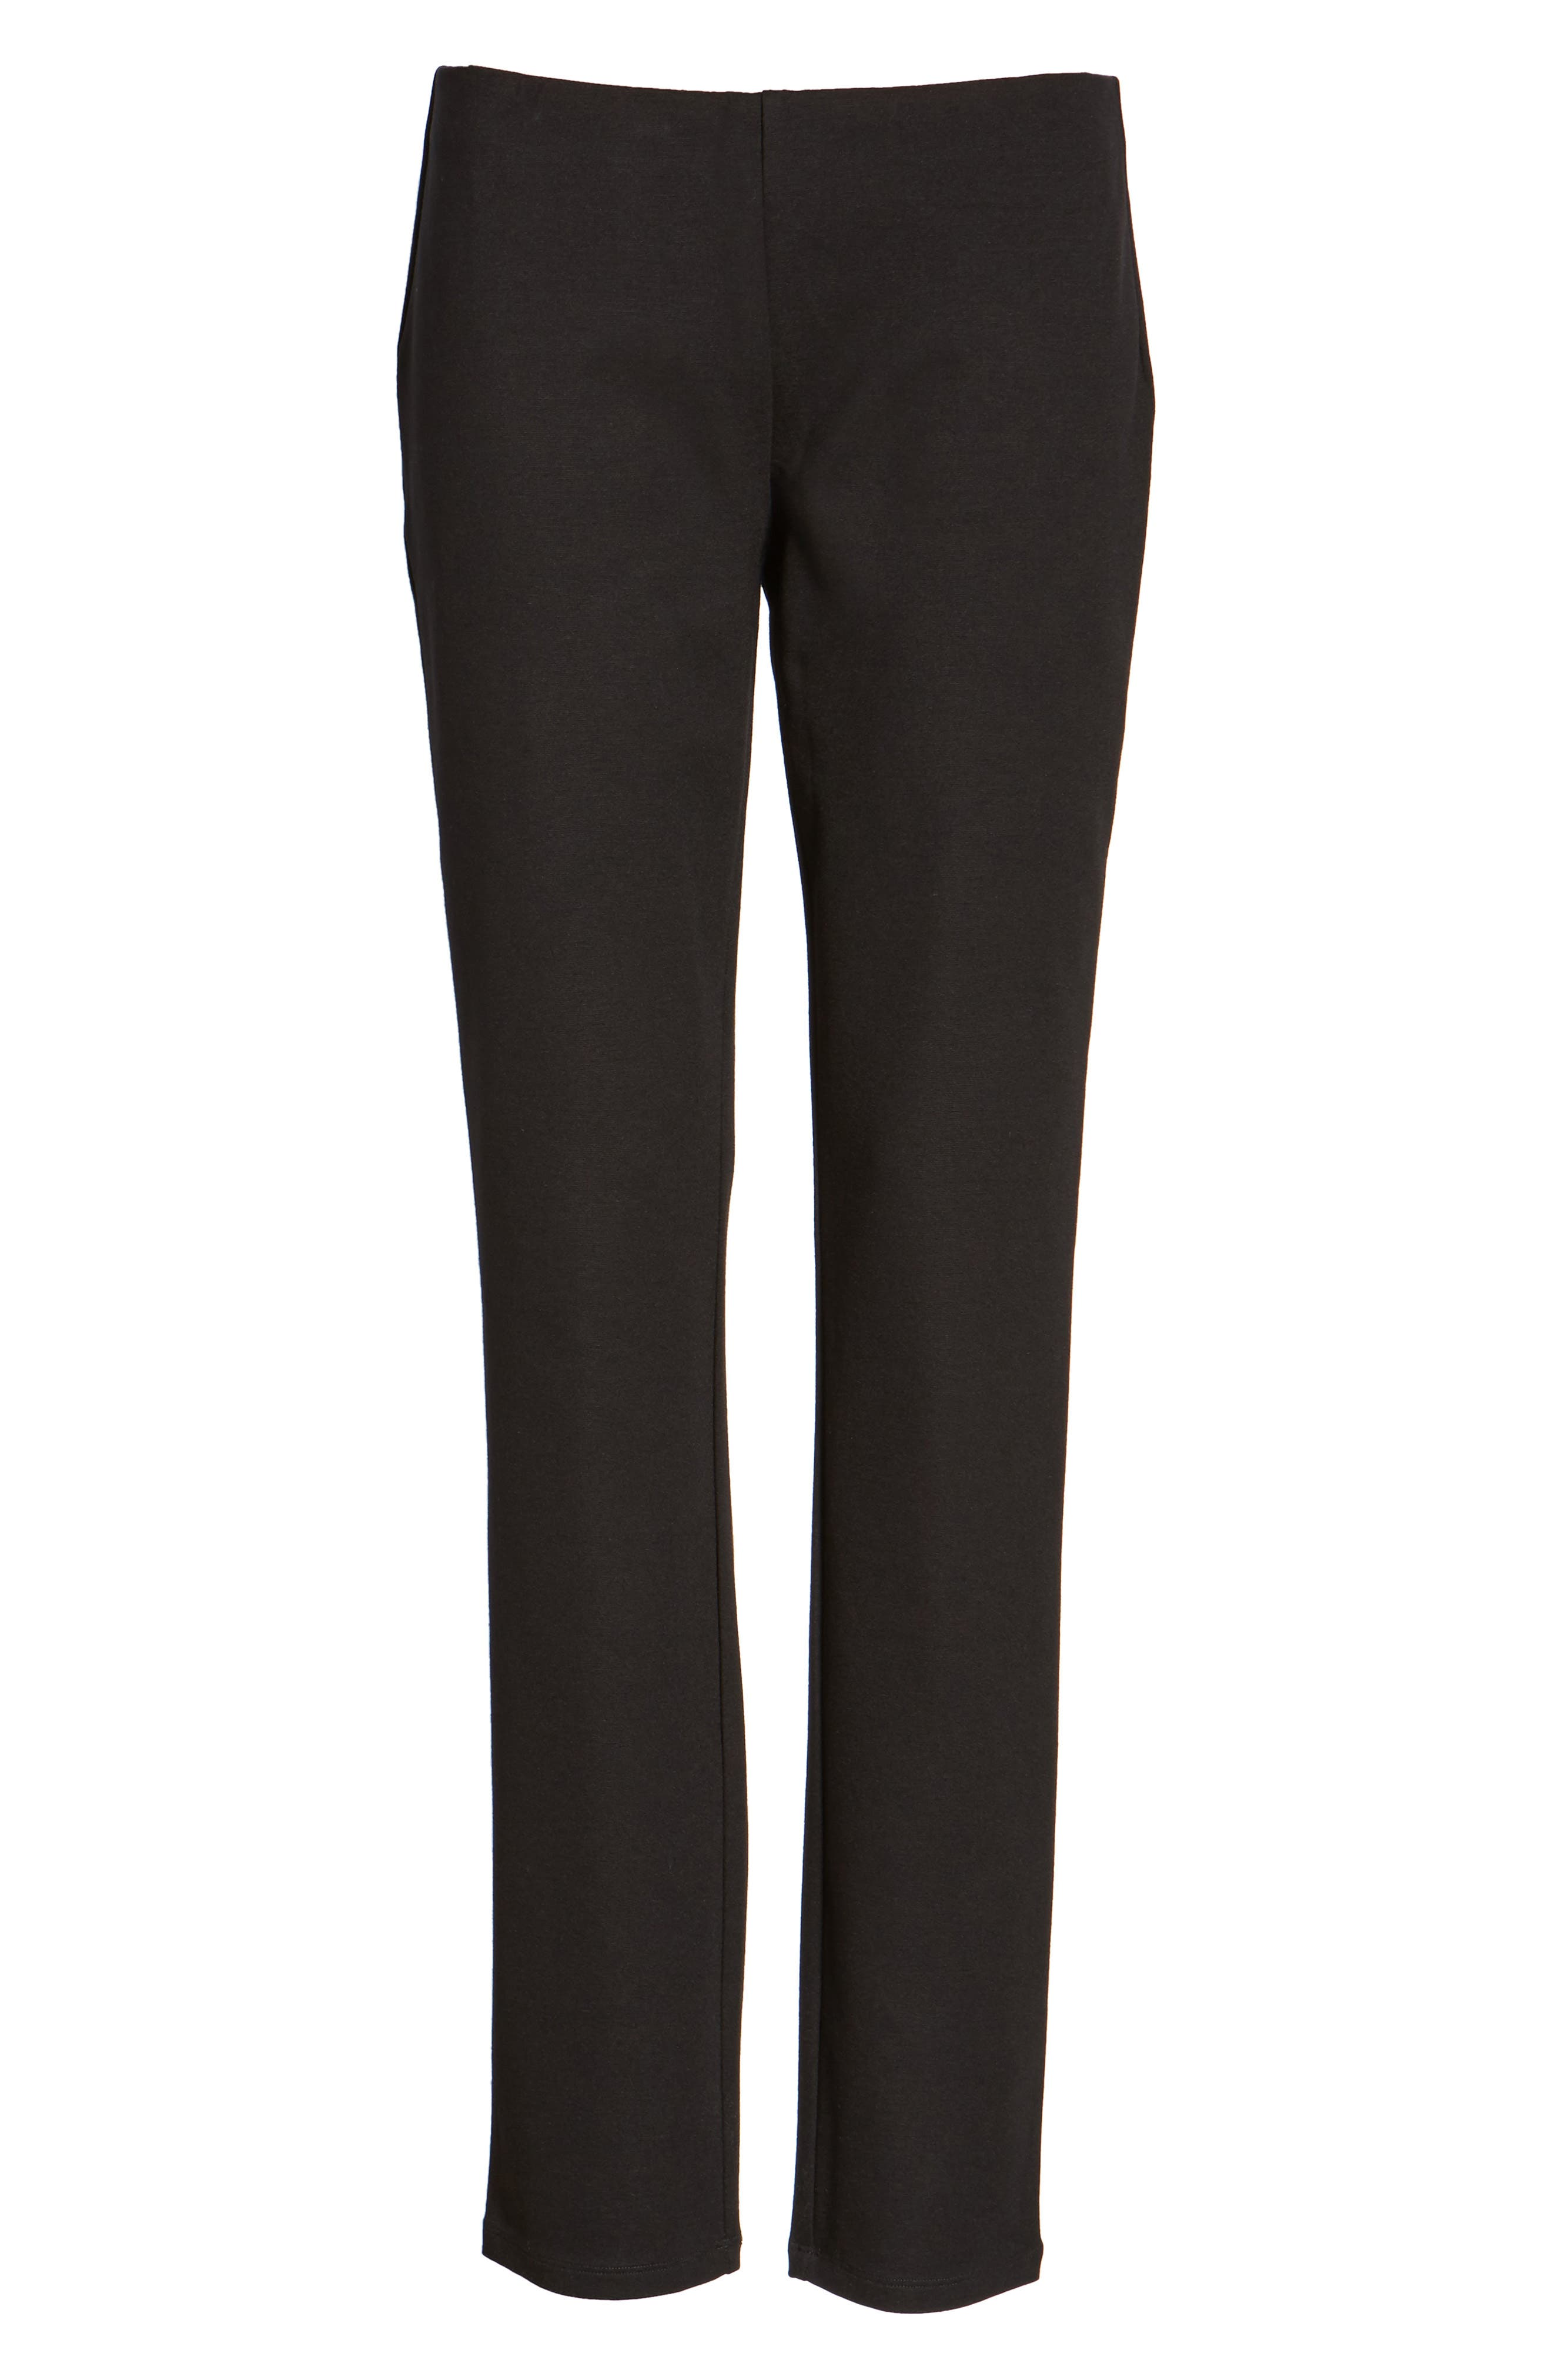 EILEEN FISHER,                             Slim Ponte Knit Pants,                             Main thumbnail 1, color,                             001